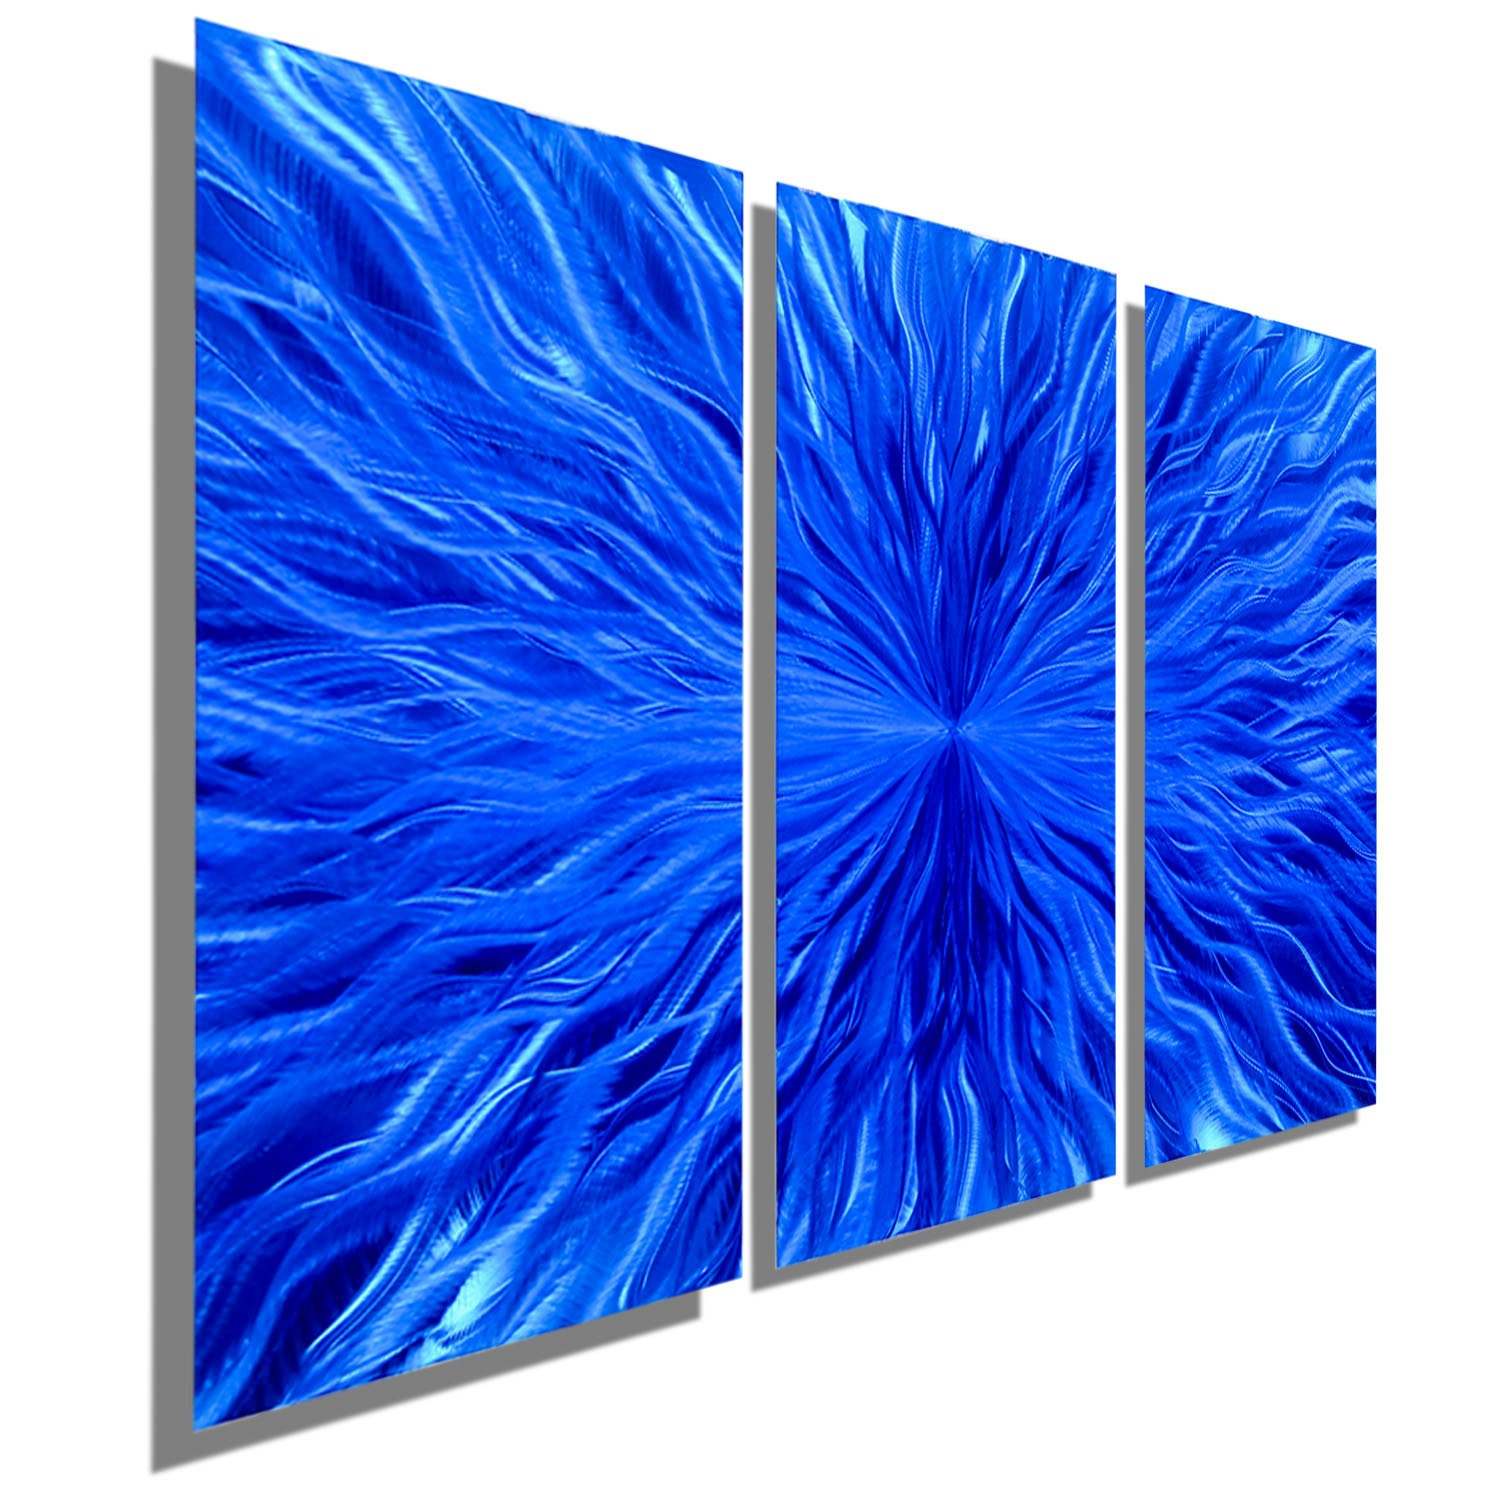 Blue Metal Wall Art Enchanting Multi Panel Contemporary Metal Wall Decor In Blue Modern Inspiration